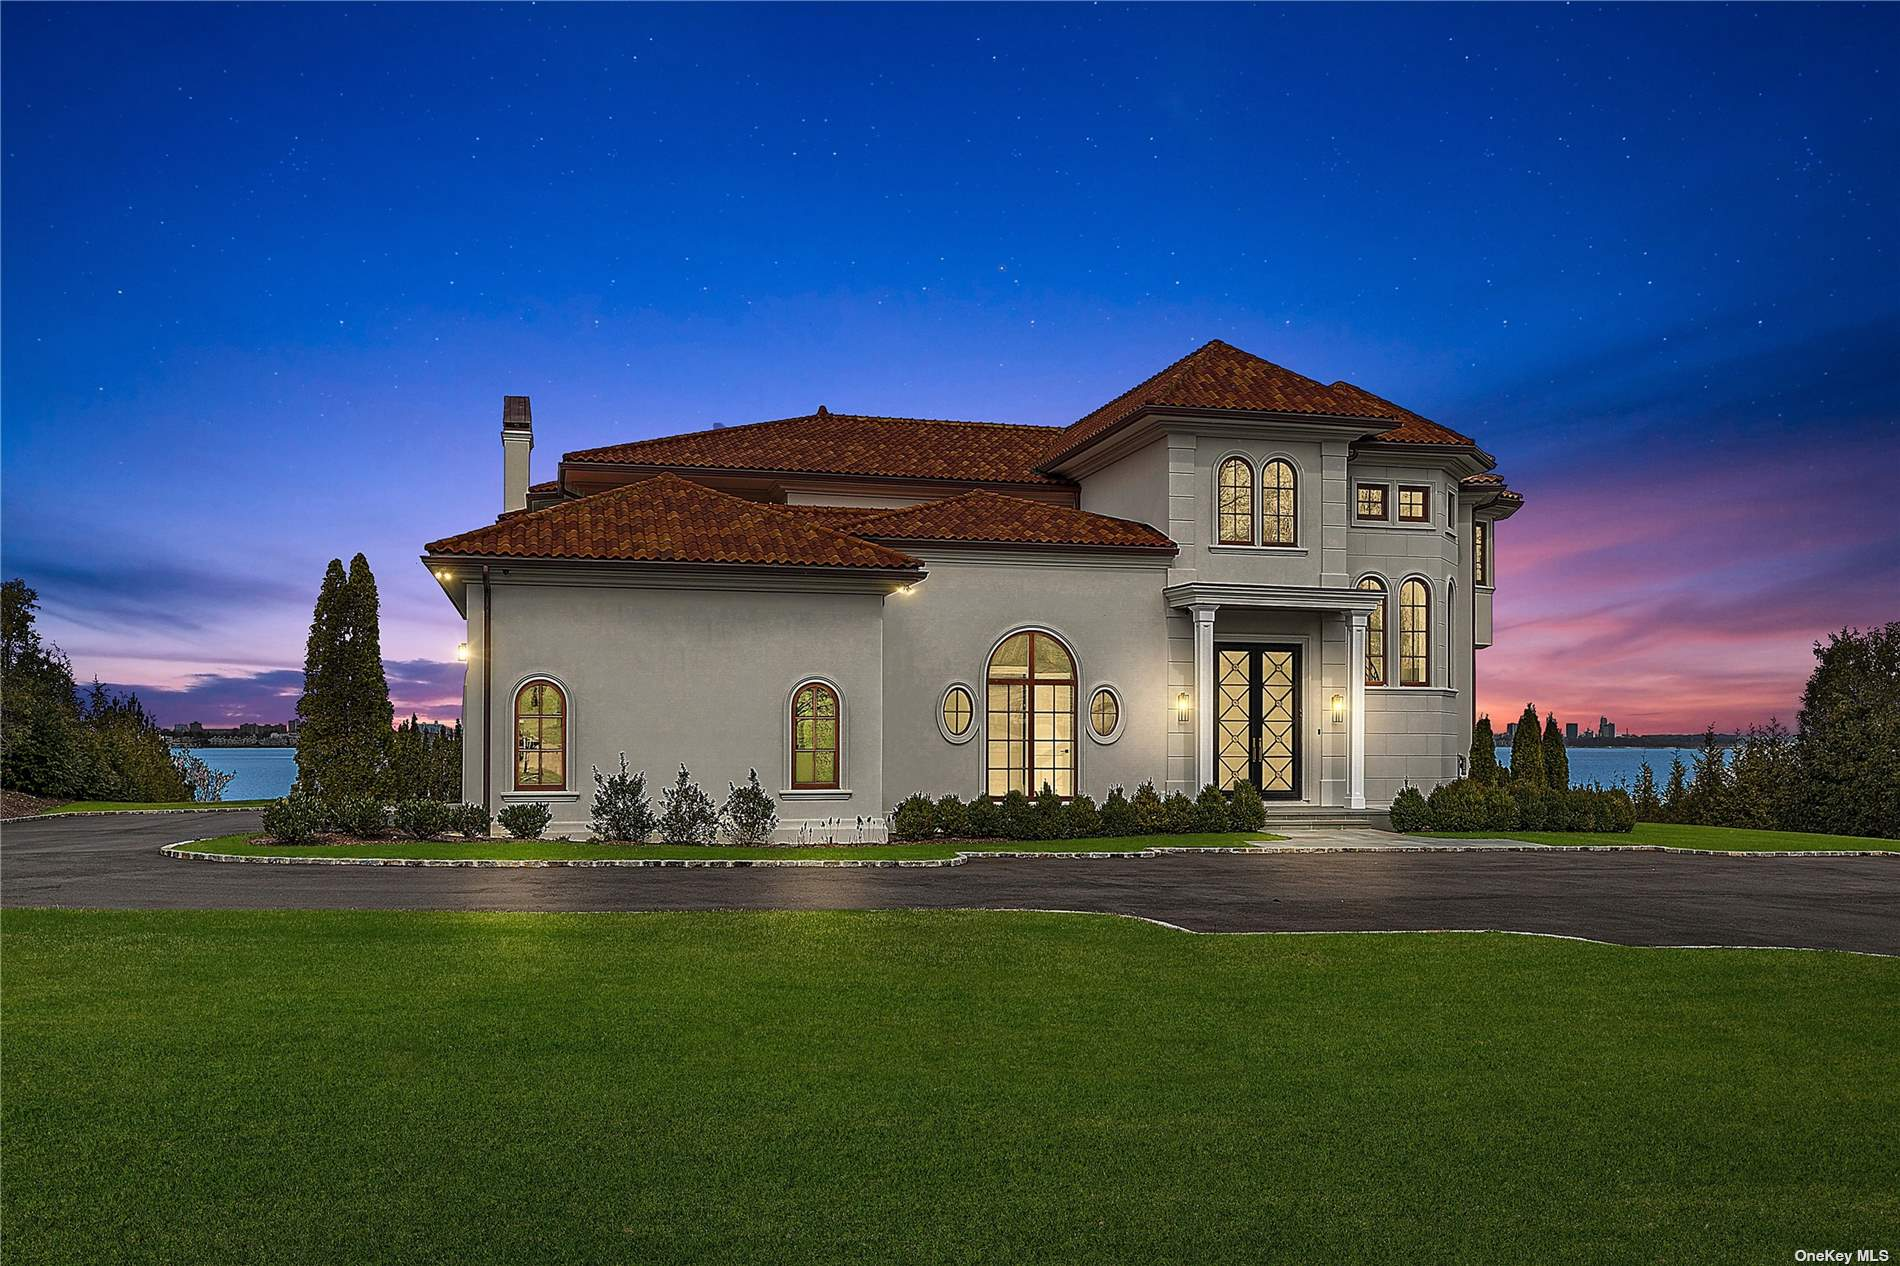 BREATHTAKING WATERFRONT OFFERING Expansive water views of the Long Island Sound, Manhattan, Throgs Neck Bridge, Westchester and Connecticut may be enjoyed year round within this elegant new construction in the Prestigious Village of Kings Point. Privately located the end of this beautifully tree-lined cul de sac, this artistically-inspired residence is currently being completed by well known and respected Rockwell Developers LLC. The attention to detail with a clean lined approach is apparent the moment you enter this magnificent residence with its elegant curved staircase, formal dining room with custom walls and gold lined accent,herringbone wood floors, an oval shaped custom blue colored library or office with walls of windows and FPLC, and the inviting eat-in-kitchen with custom cabinetry, marble countertops, and high end appliances, just to name a few. 1.46 Acres of water and private beachfront.